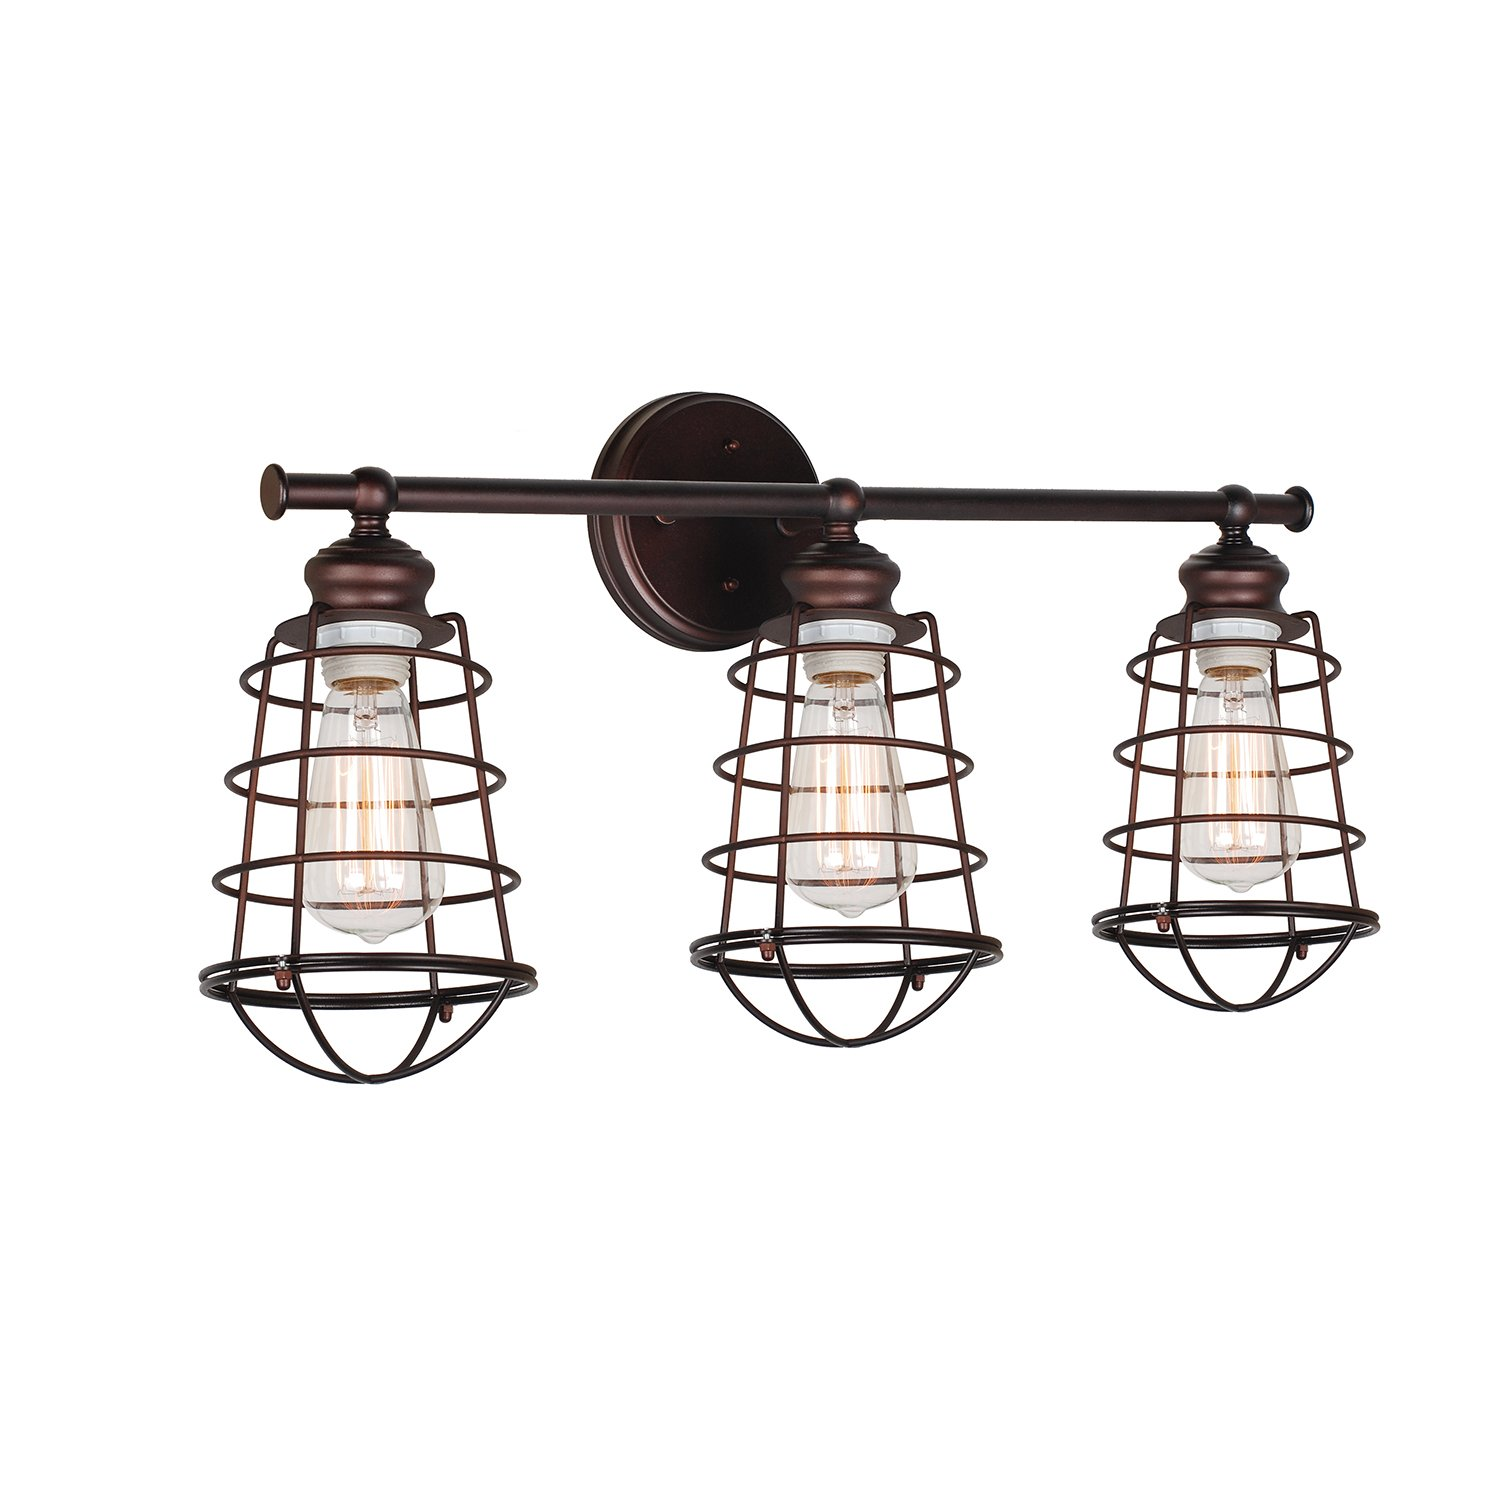 Design House Ajax Light Vanity Light Bronze Amazoncom - Bathroom vanity lights with shades